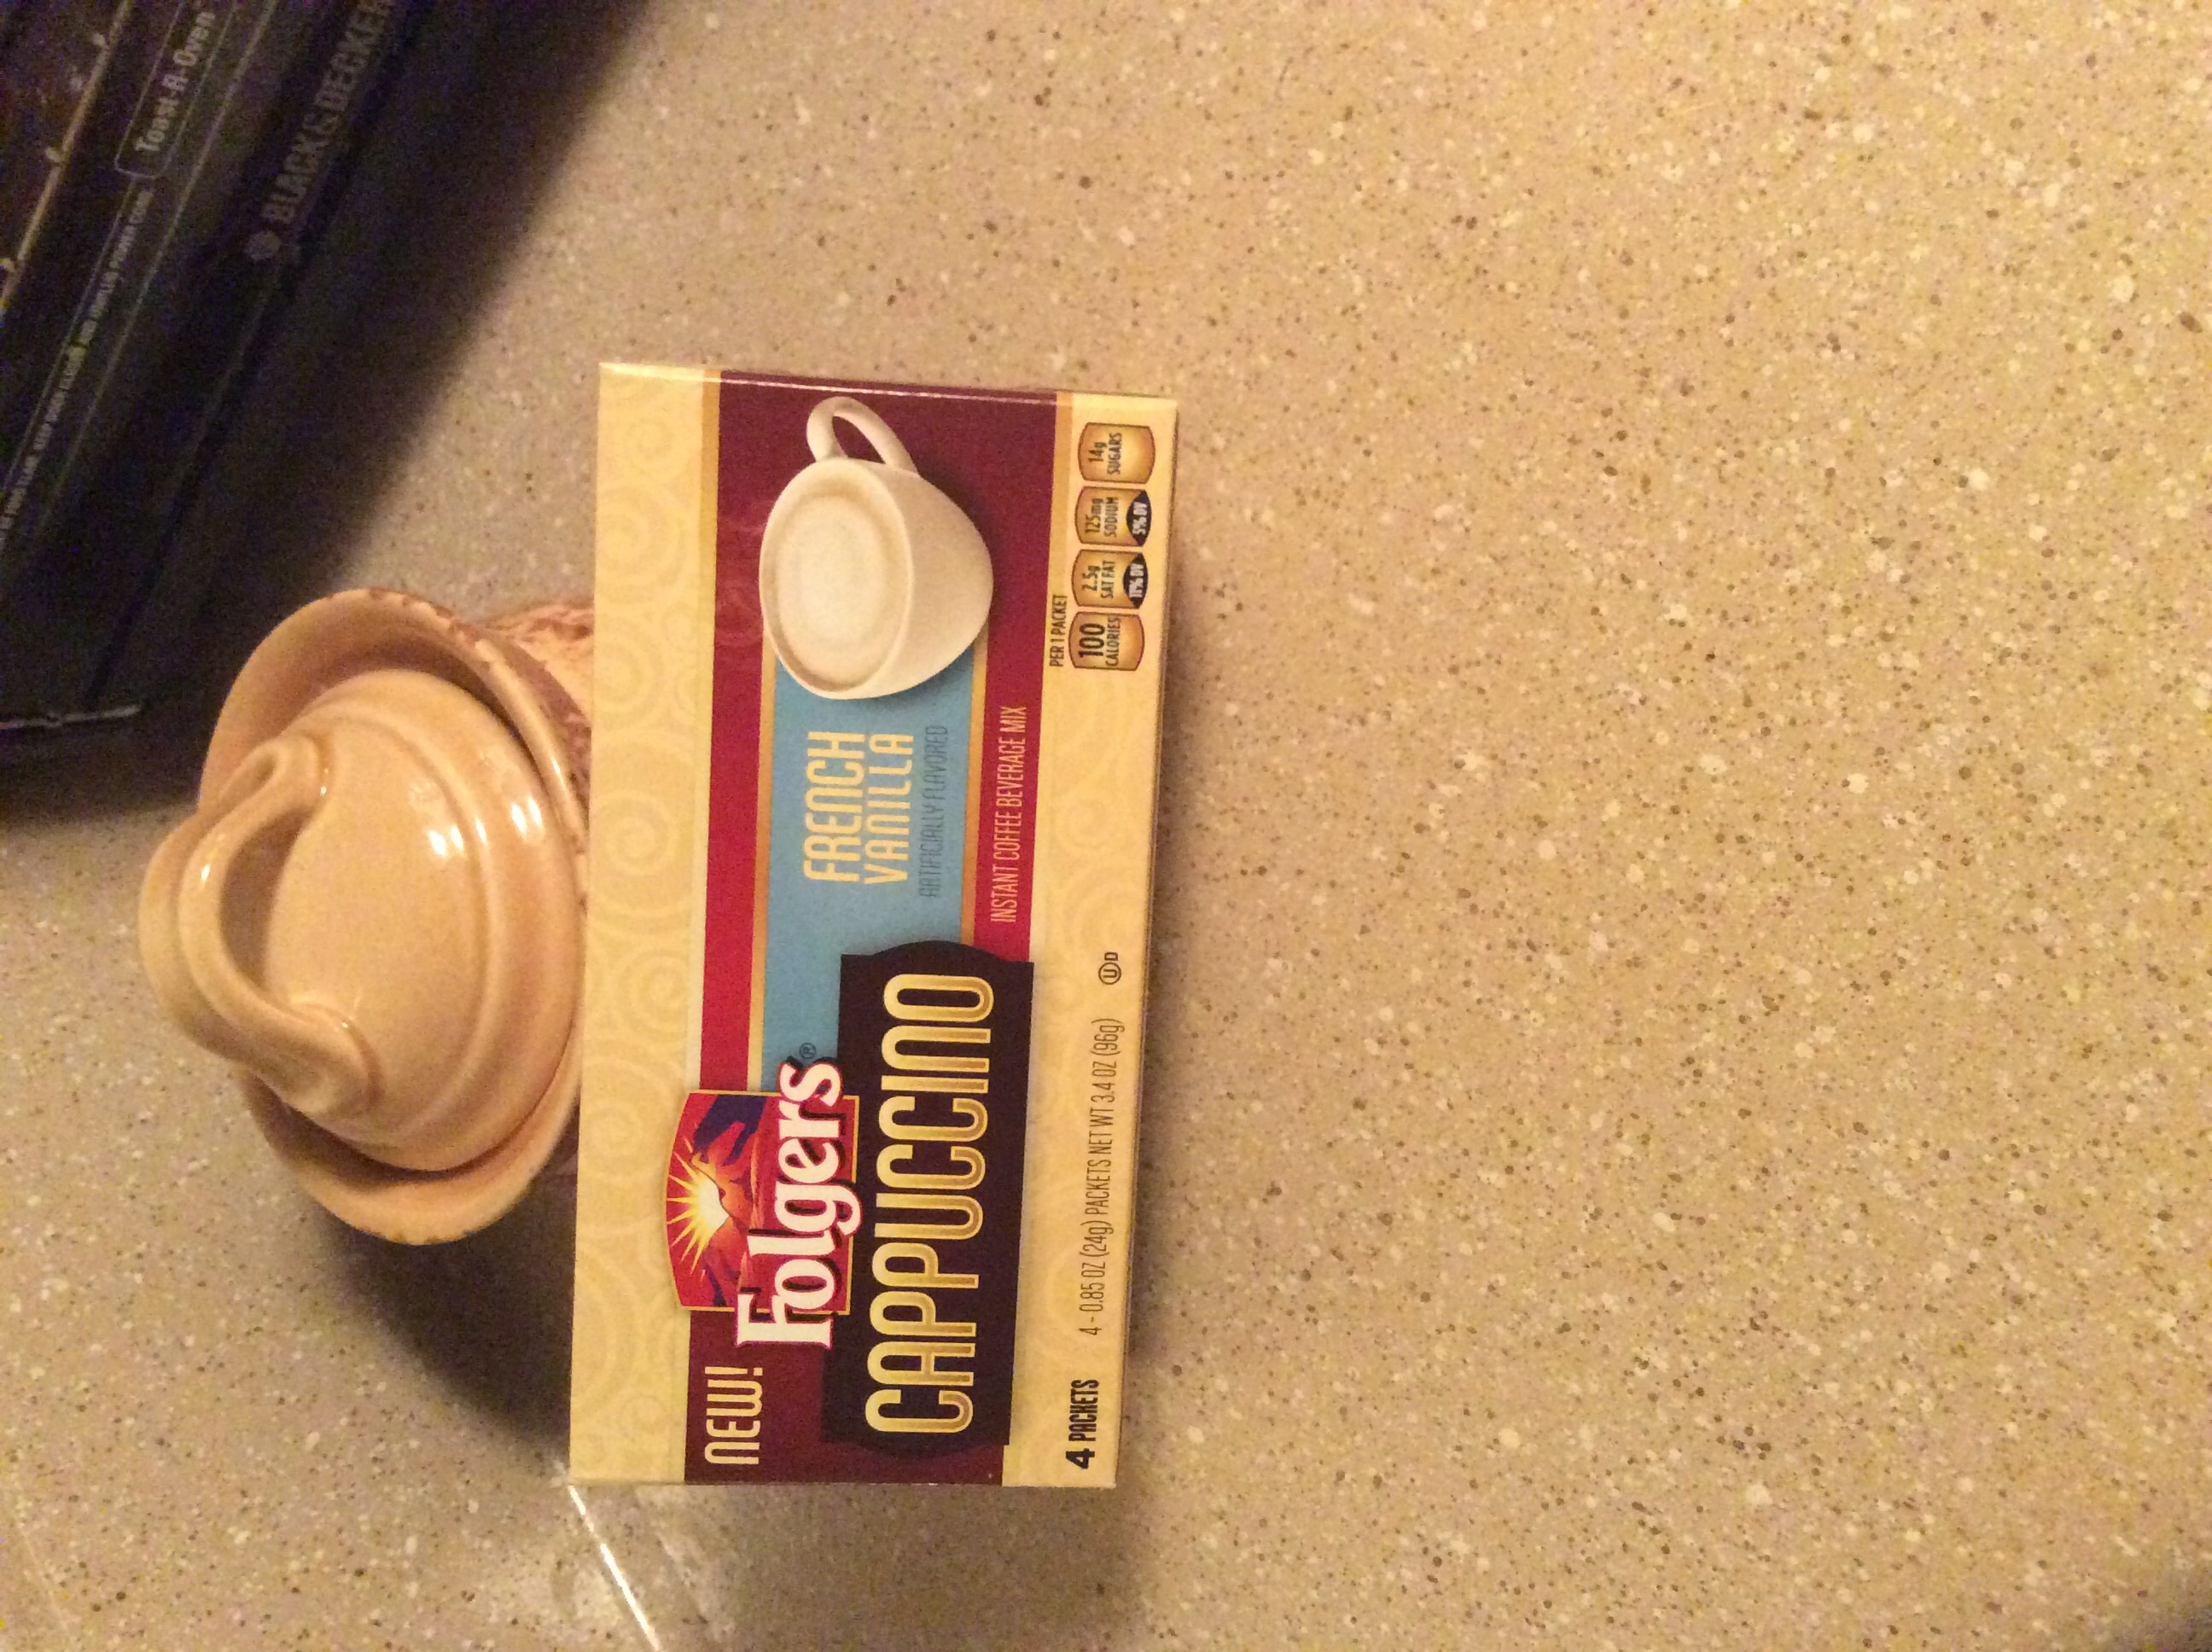 Folgers® Cappuccino French Vanilla Instant Coffee Beverage uploaded by Camille S.